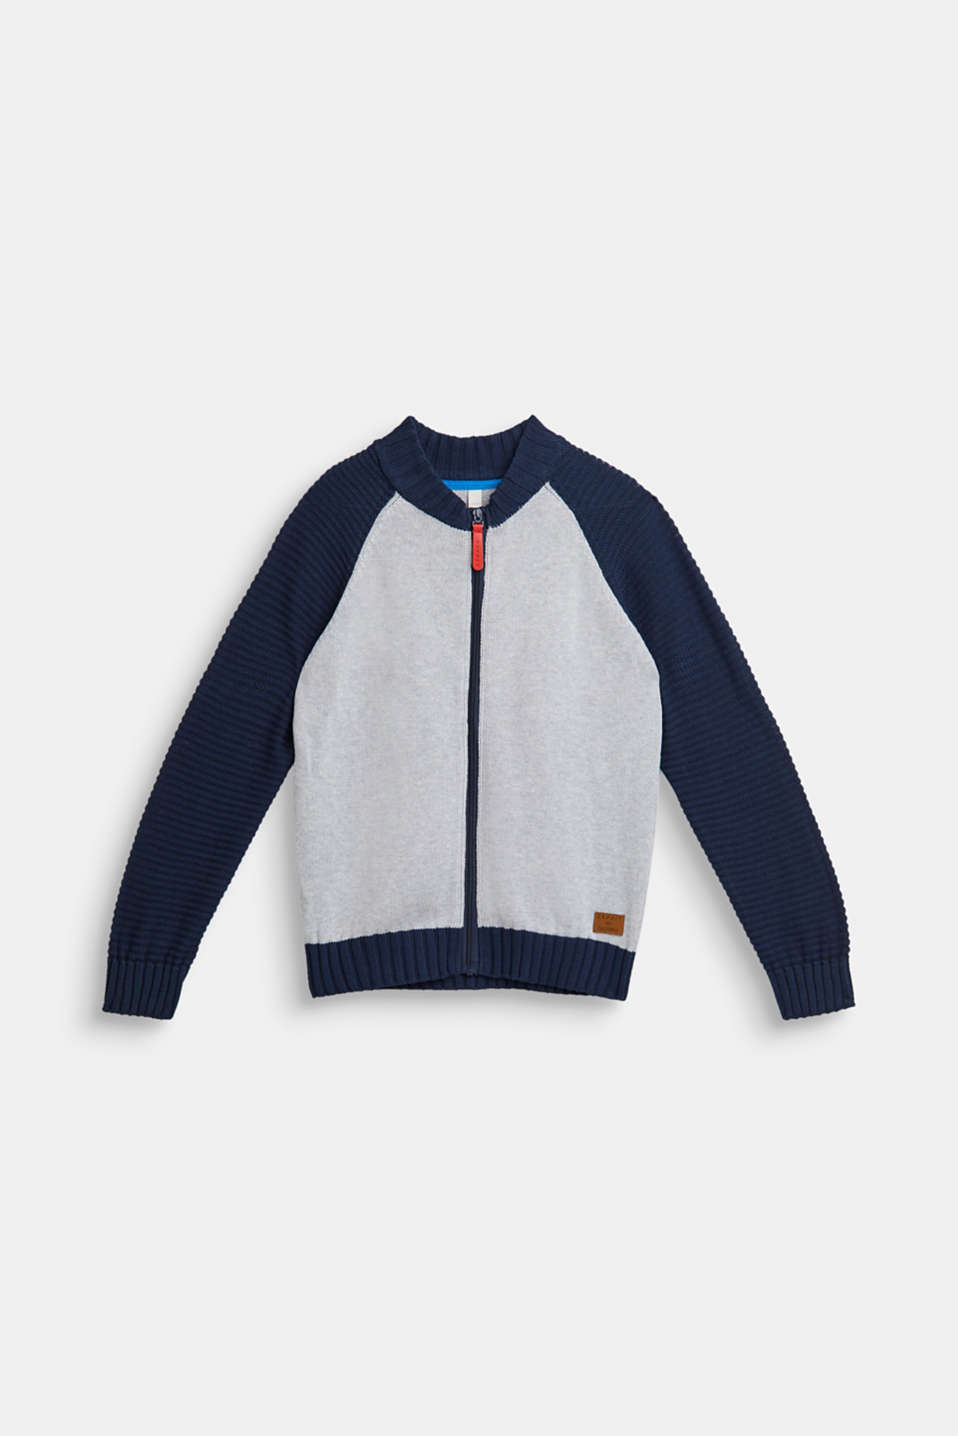 Esprit - Colour block cardigan, 100% cotton